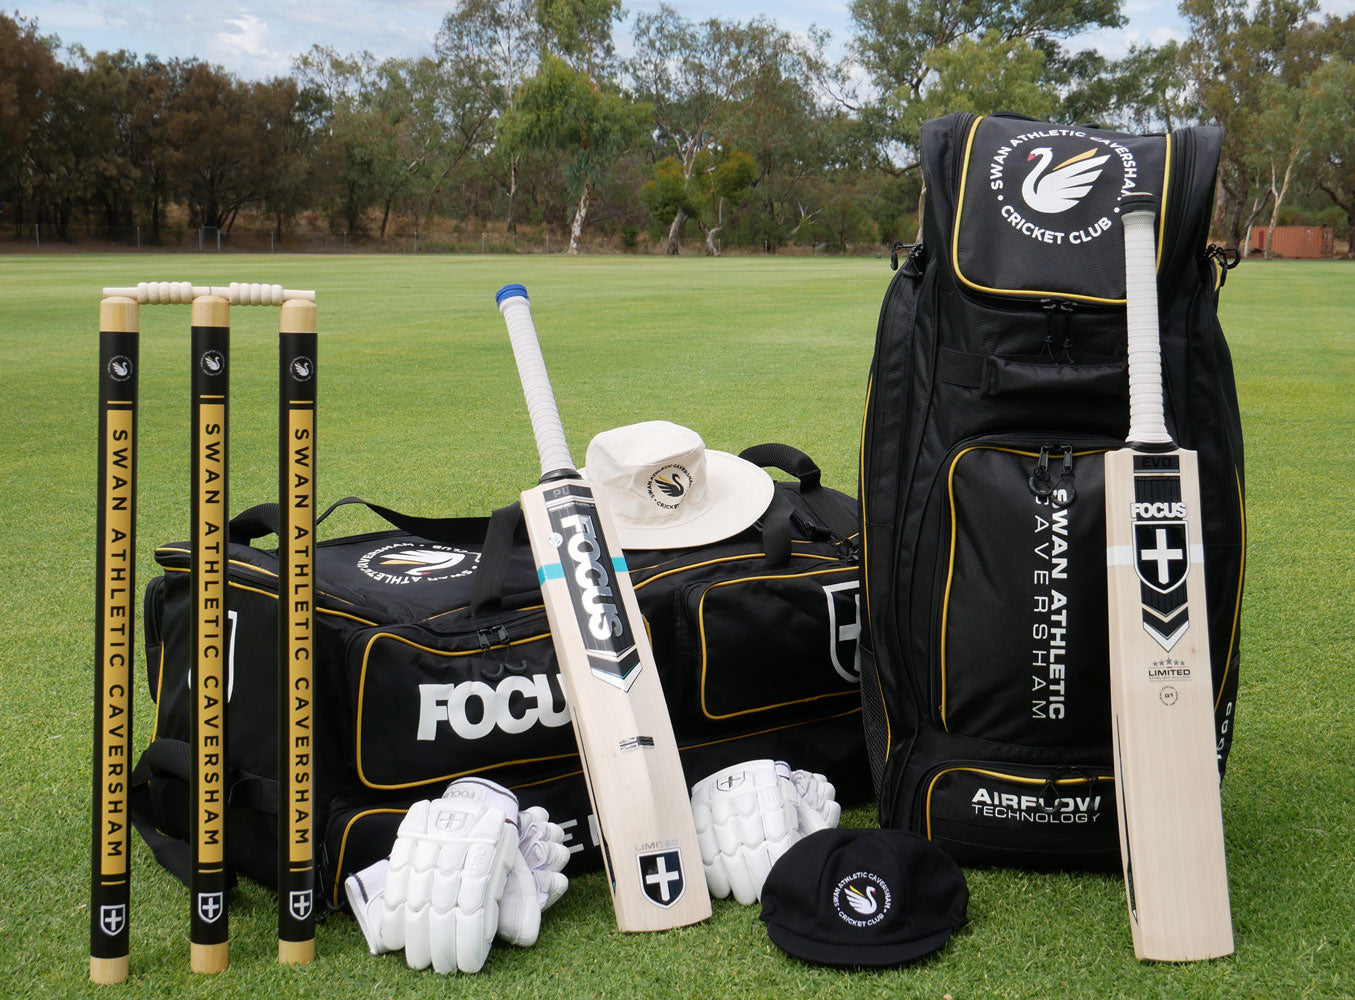 Focus Mi-Club - custom designed cricket kit, bags, helmets, stumps and more.